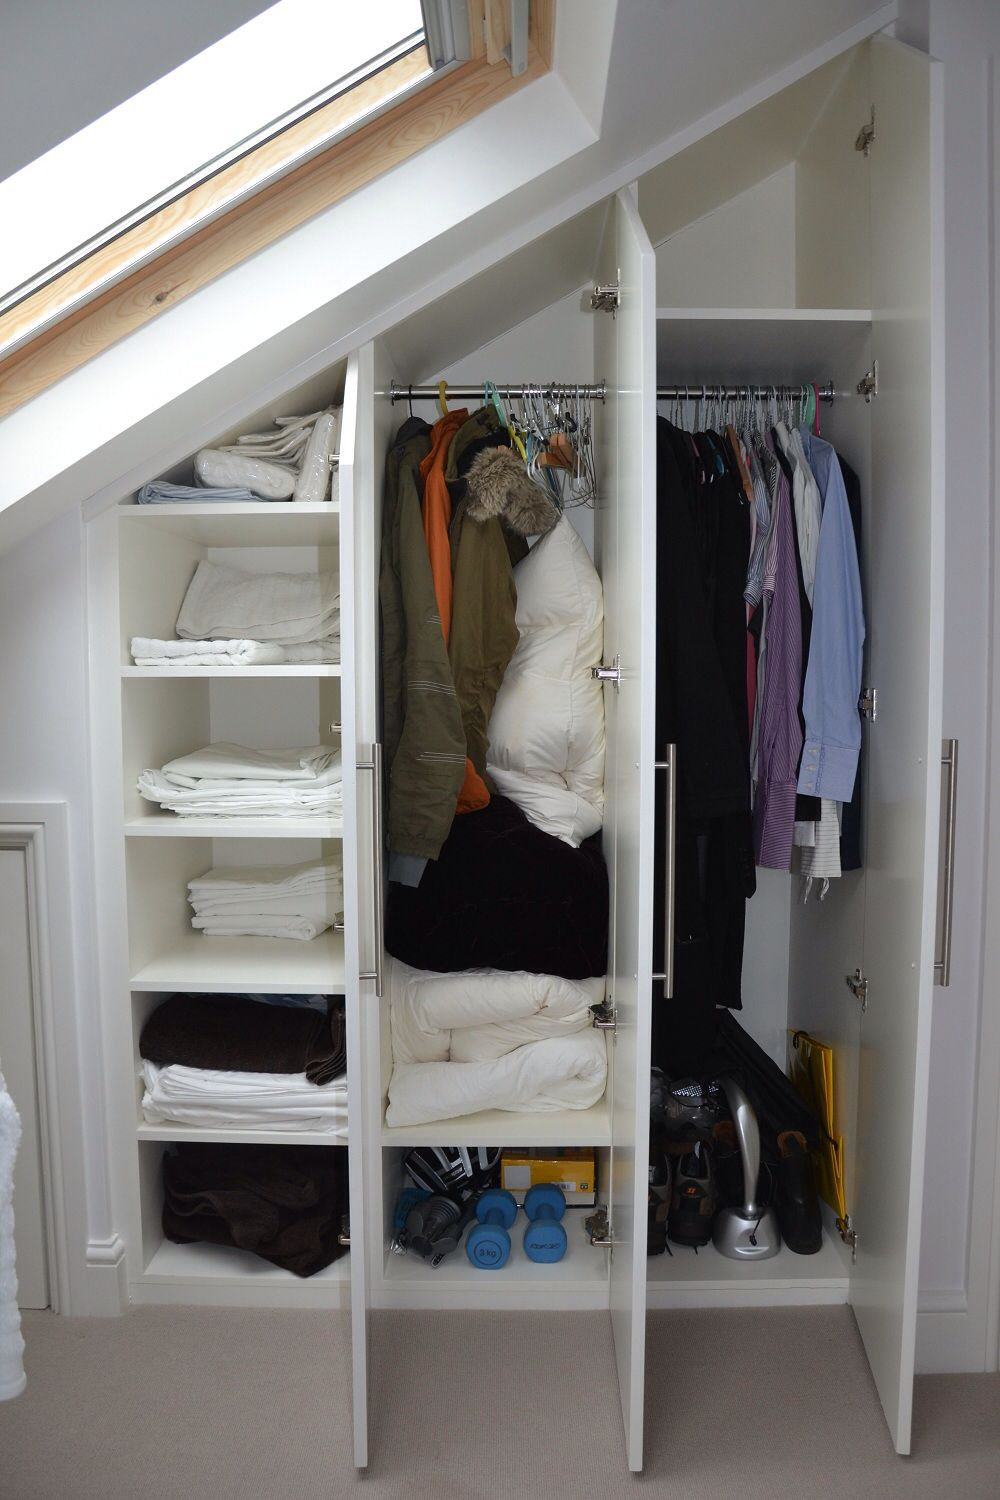 Loft bedroom storage ideas  Storage ideas  New home inspiration  Pinterest  Lofts Wardrobes